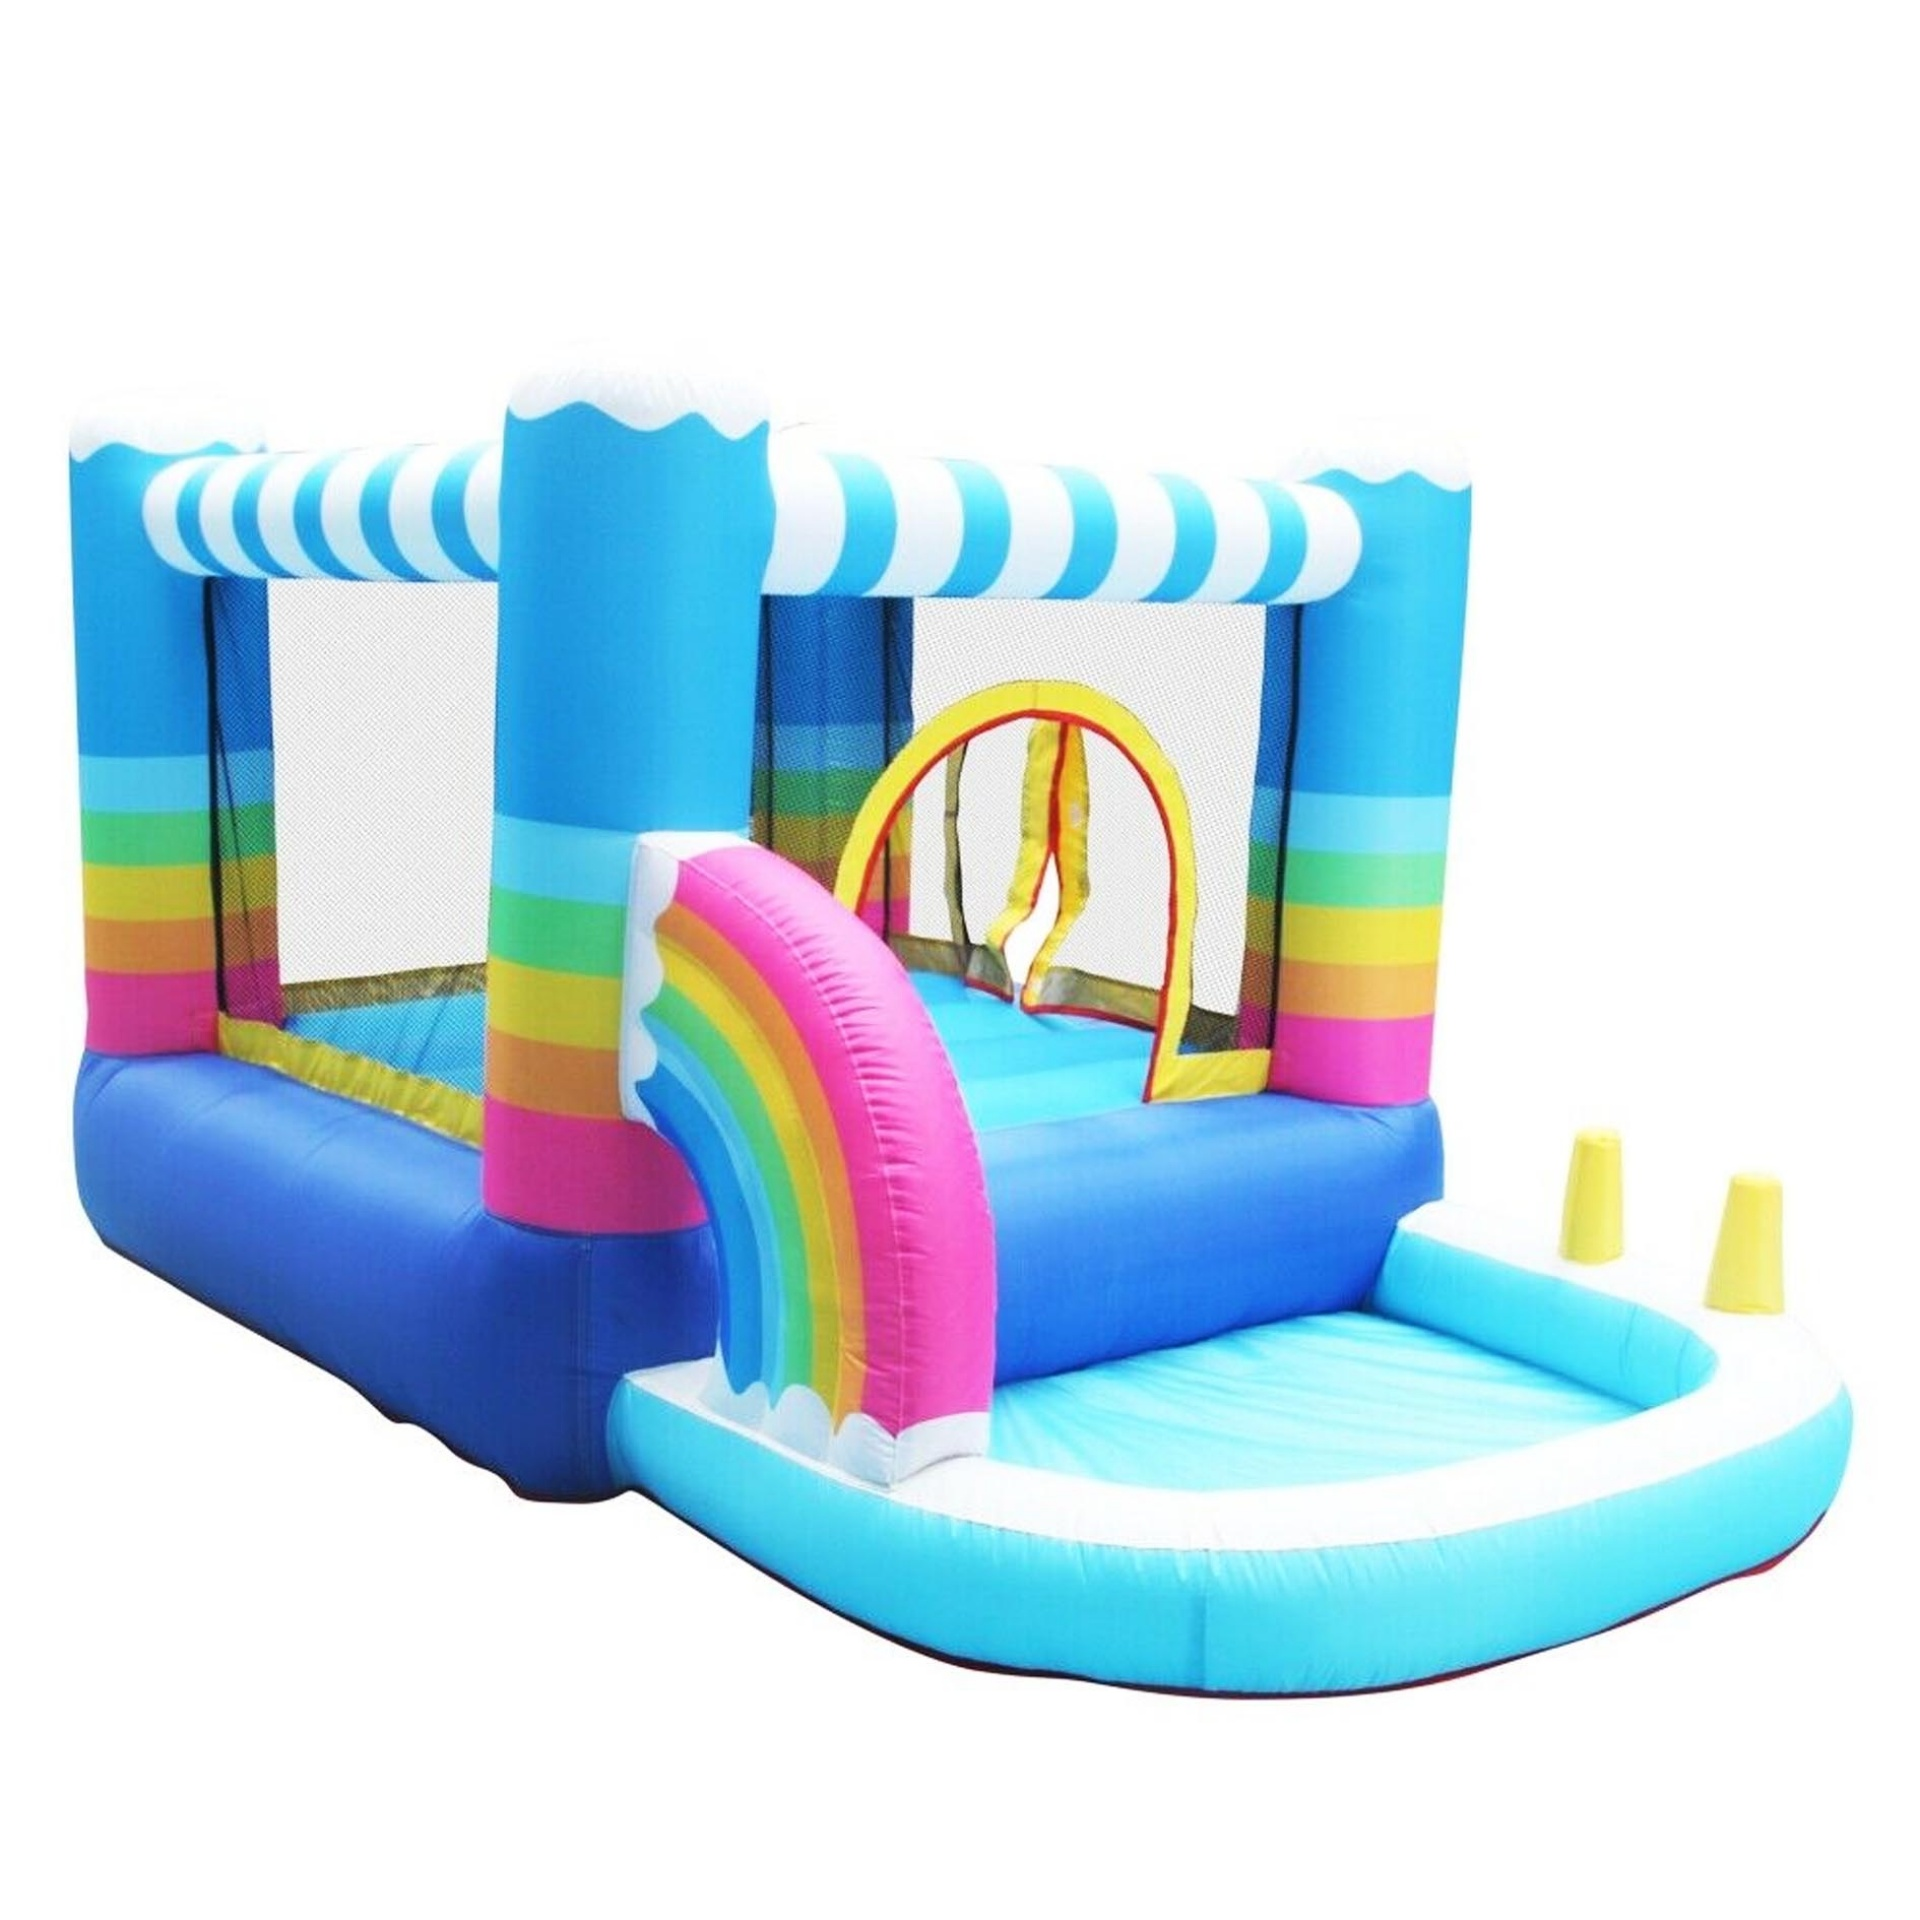 Custom indoor/outdoor inflatable bounce house children's playground